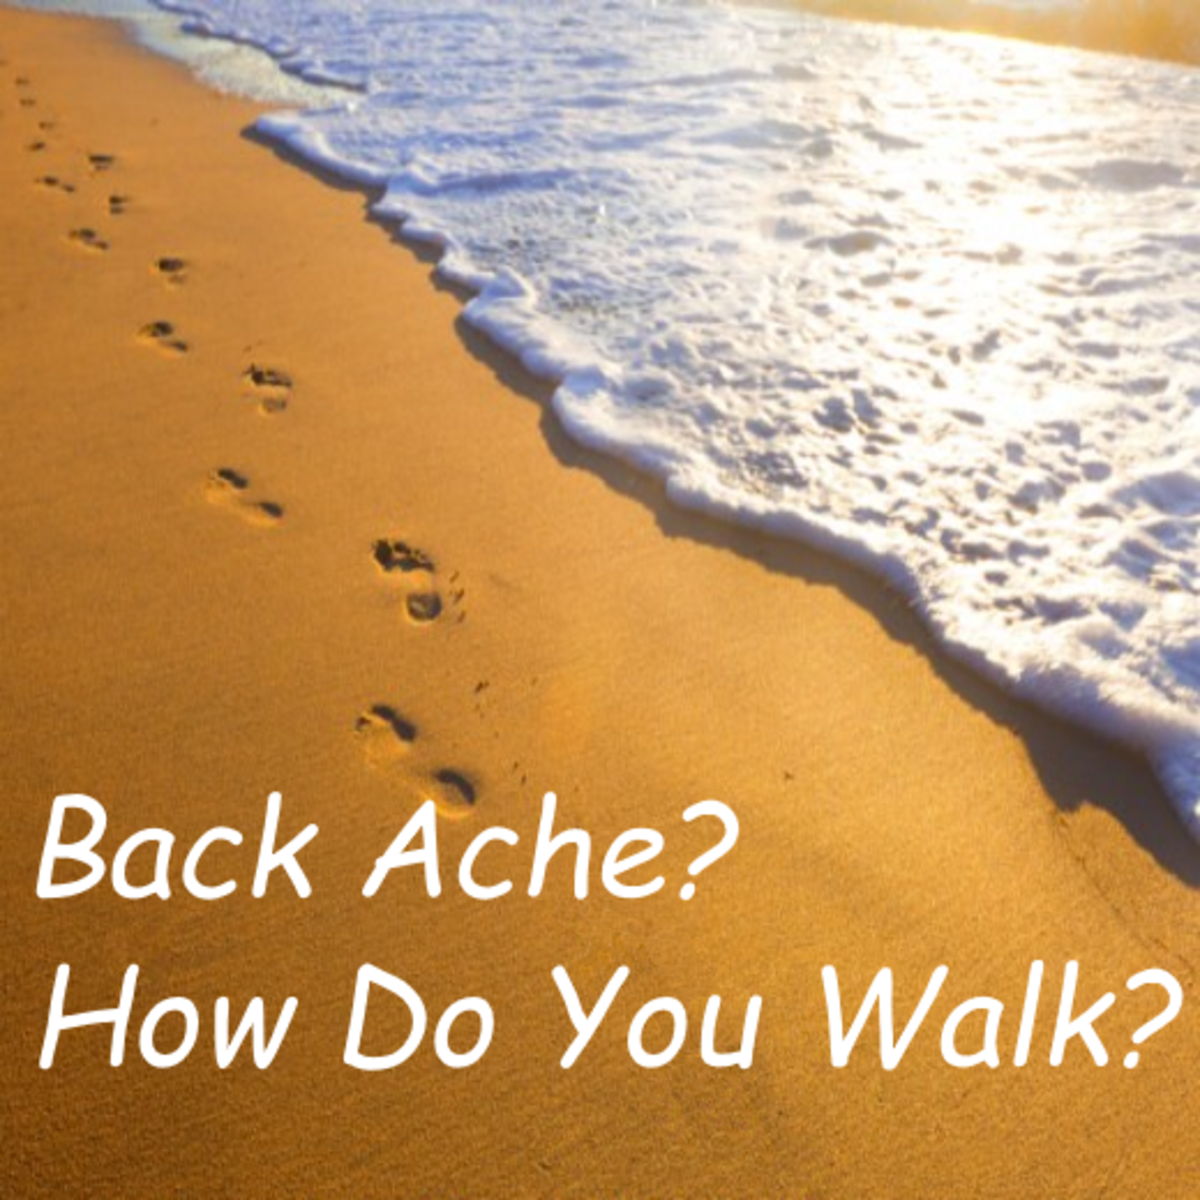 How to Cure Back Ache? Improve Walking Posture – 3 Easy Tips